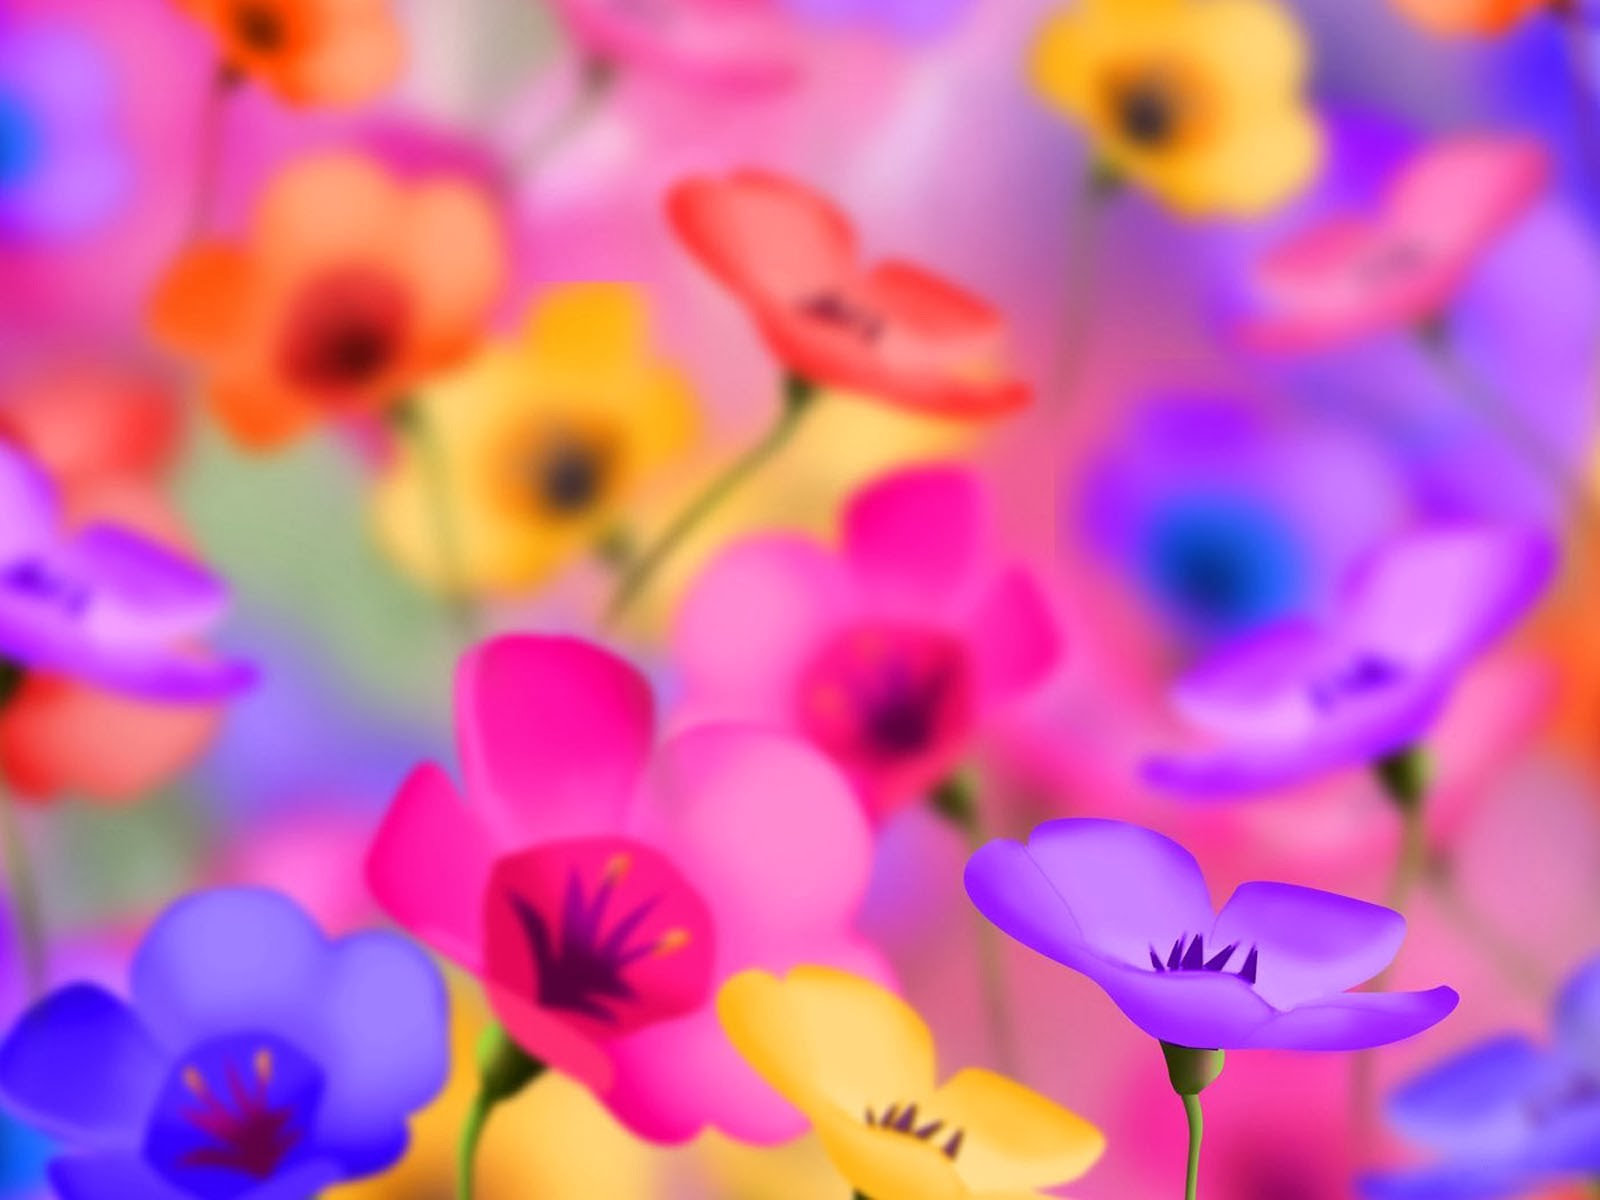 Beautiful Free HD Flower Wallpapers  DesignMaz 1600x1200